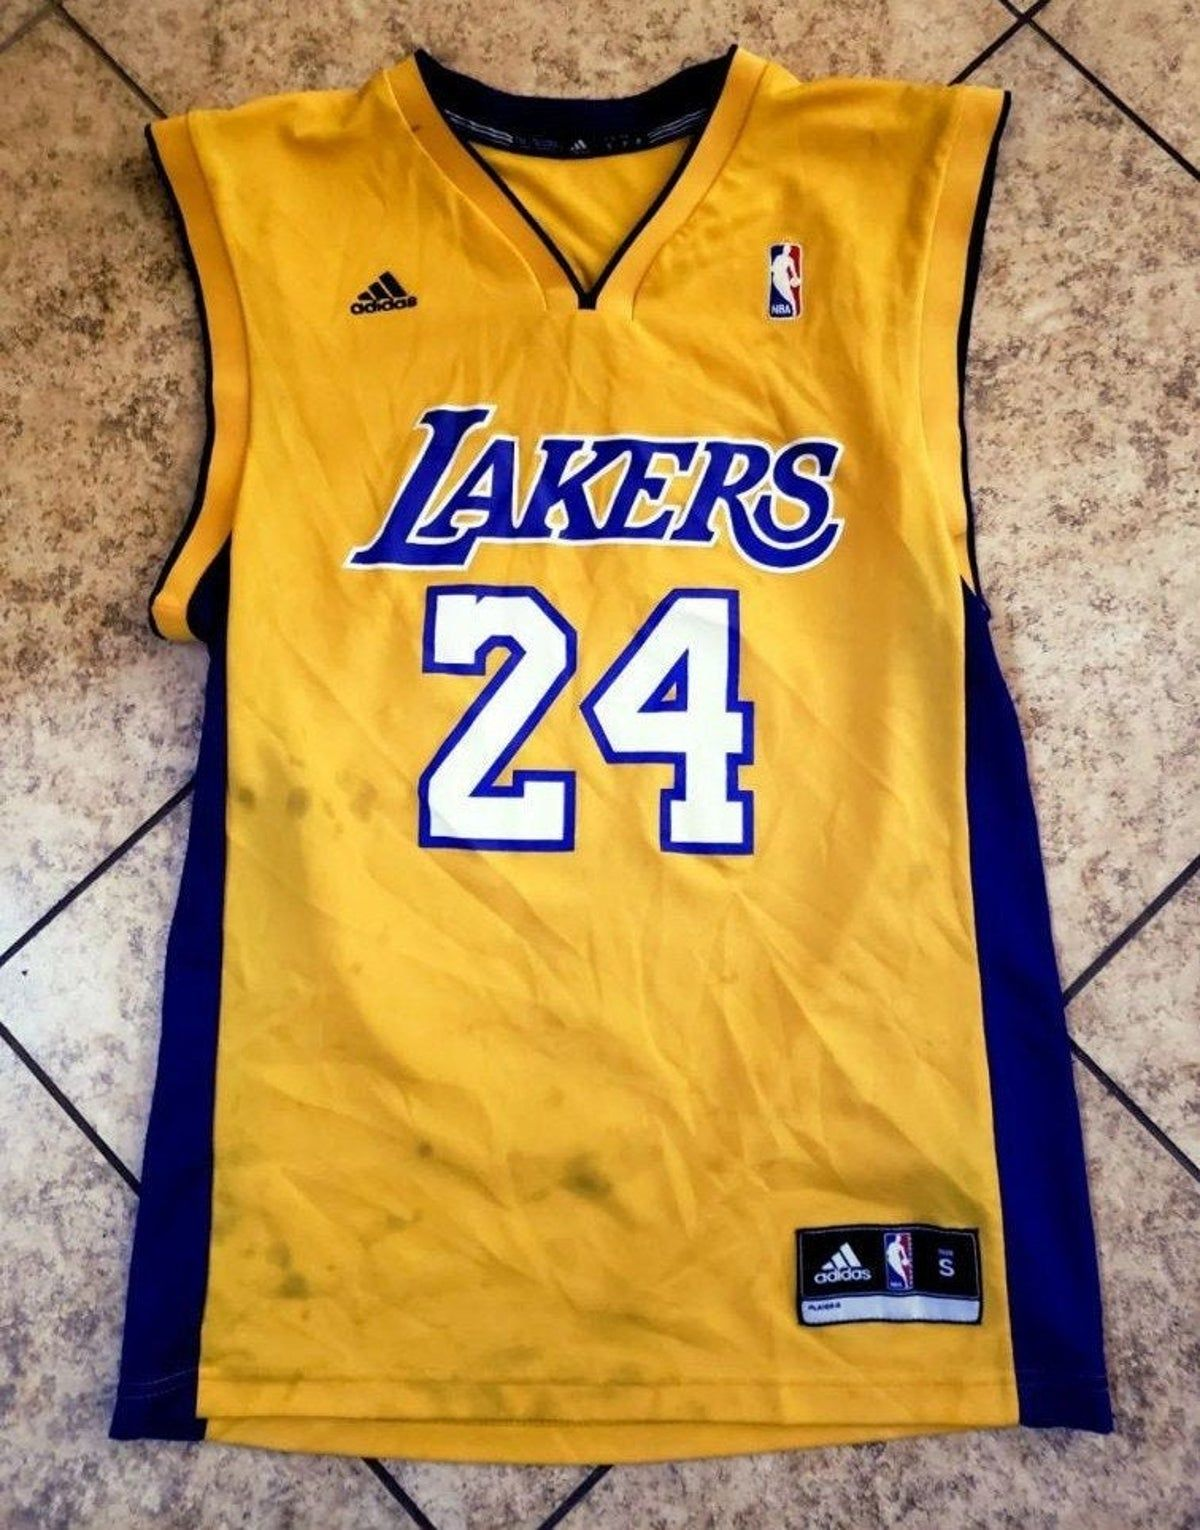 Adidas Coby Bryant 24 Jersey Nba Lakers In 2020 Basketball Players Nba Jersey Bryant